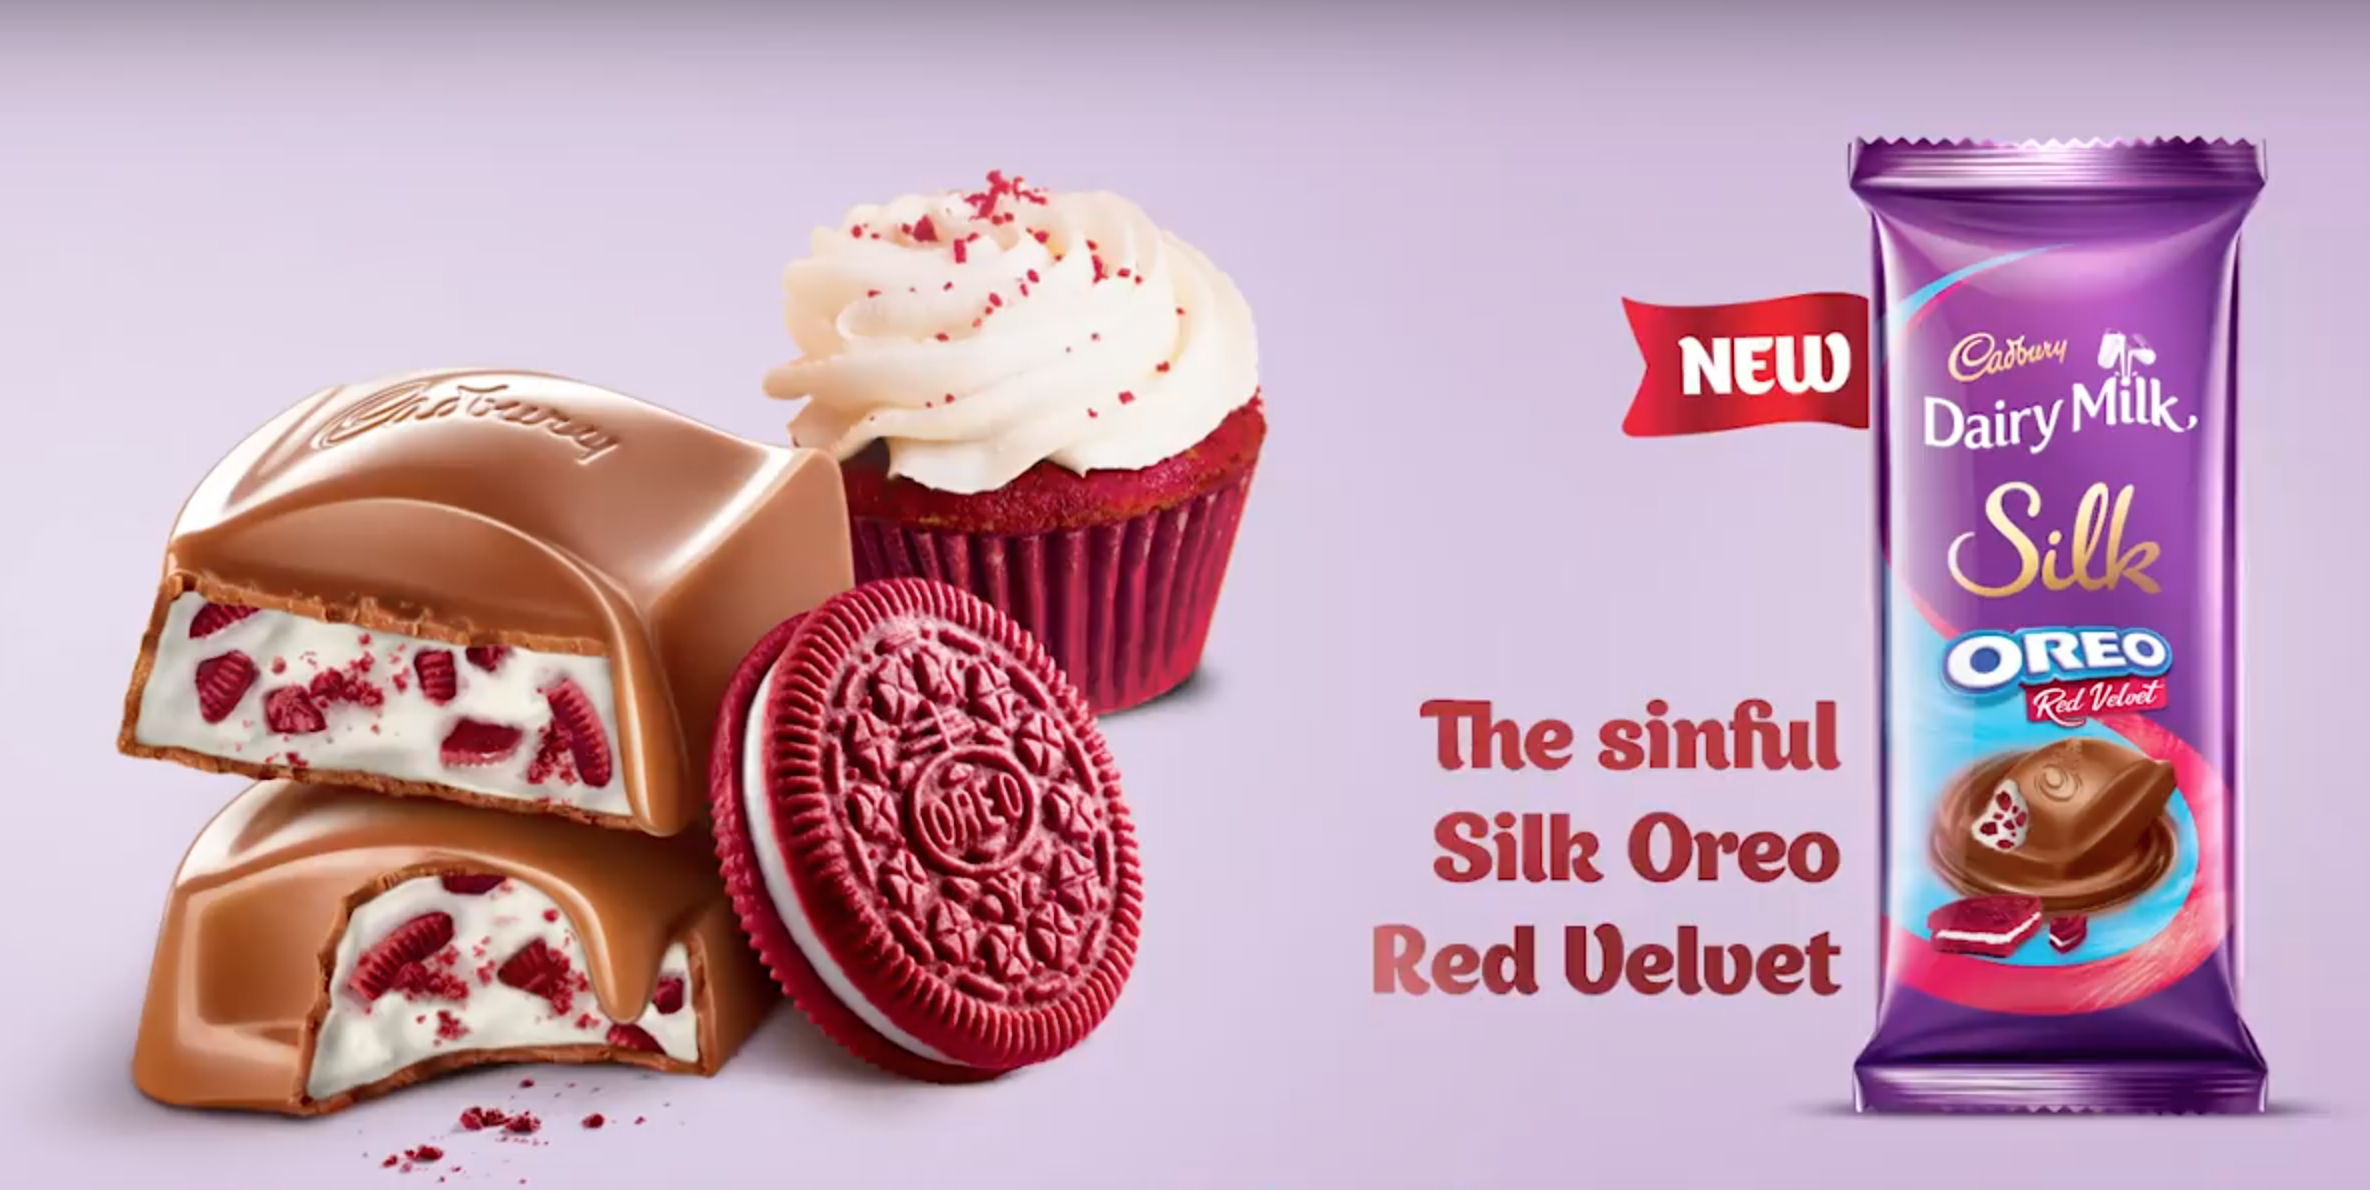 Now you can buy a Dairy Milk filled with Oreos and red velvet cake pieces